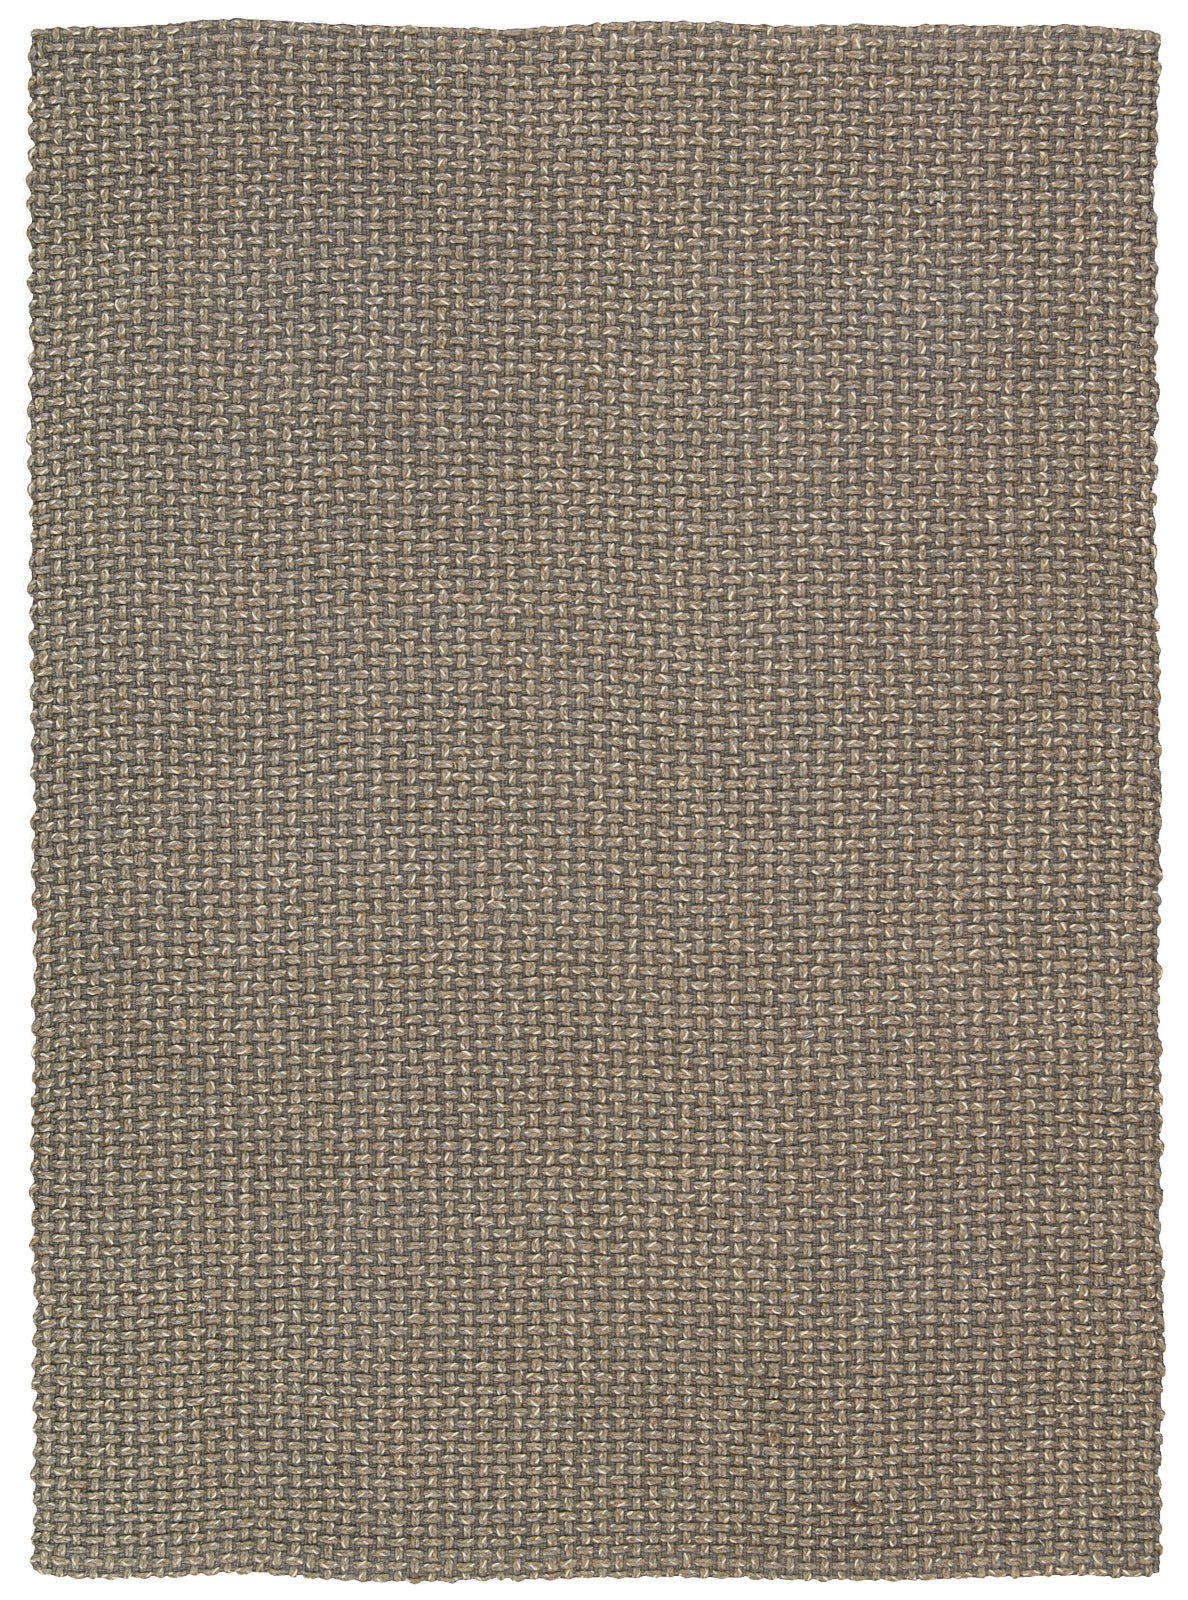 Nourison Sand And Slate SNS01 Tweed Area Rug by Joseph Abboud main image